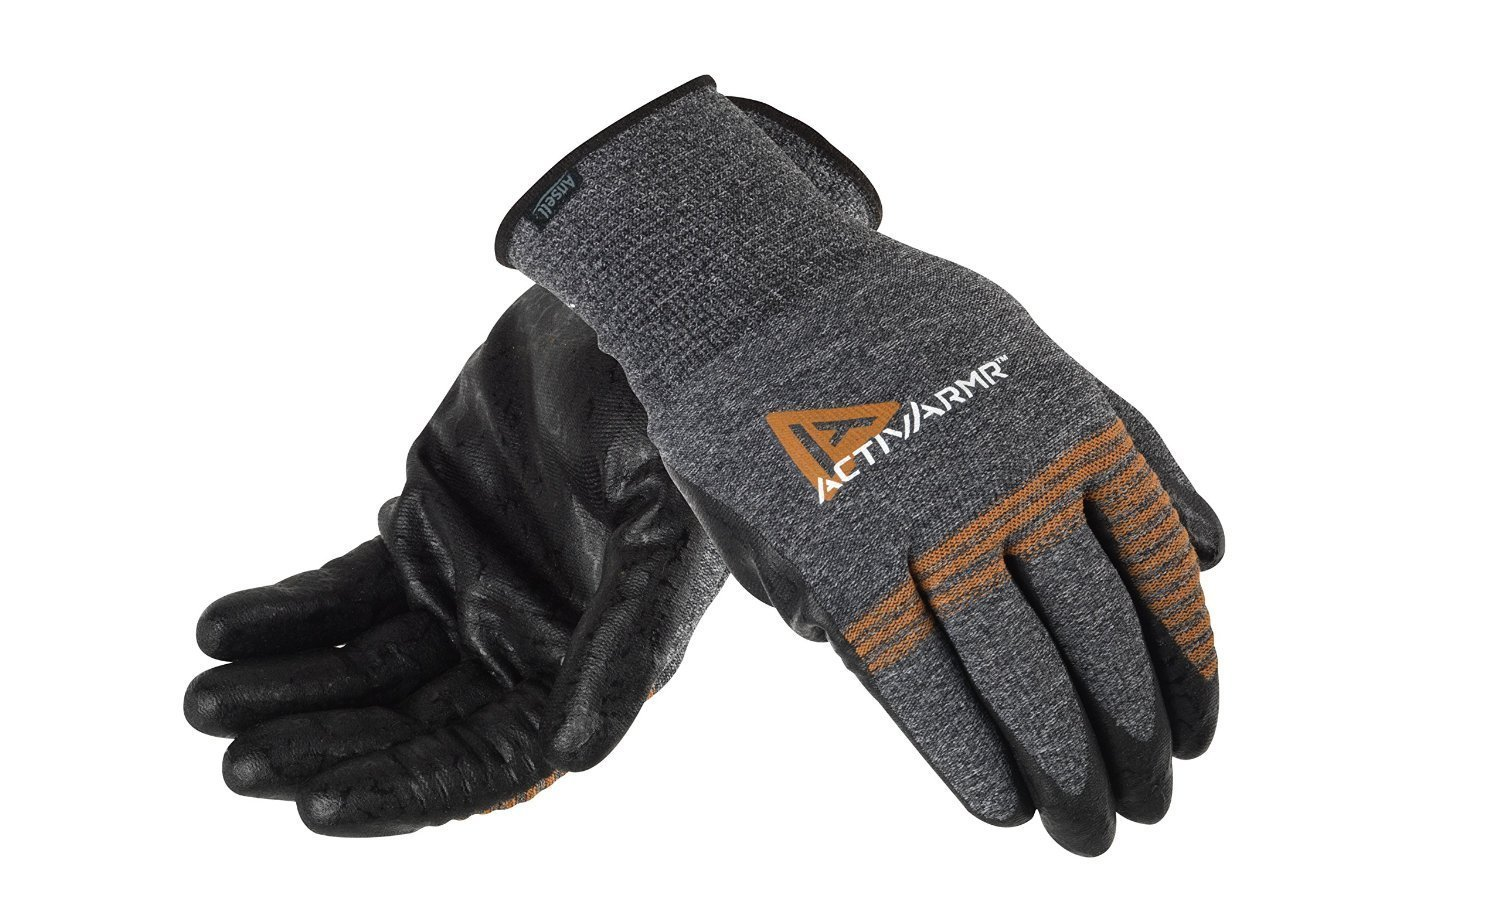 Ansell ActivArmr 97-007 Multipurpose Light Duty Gloves, Small (1 Pair) by Ansell